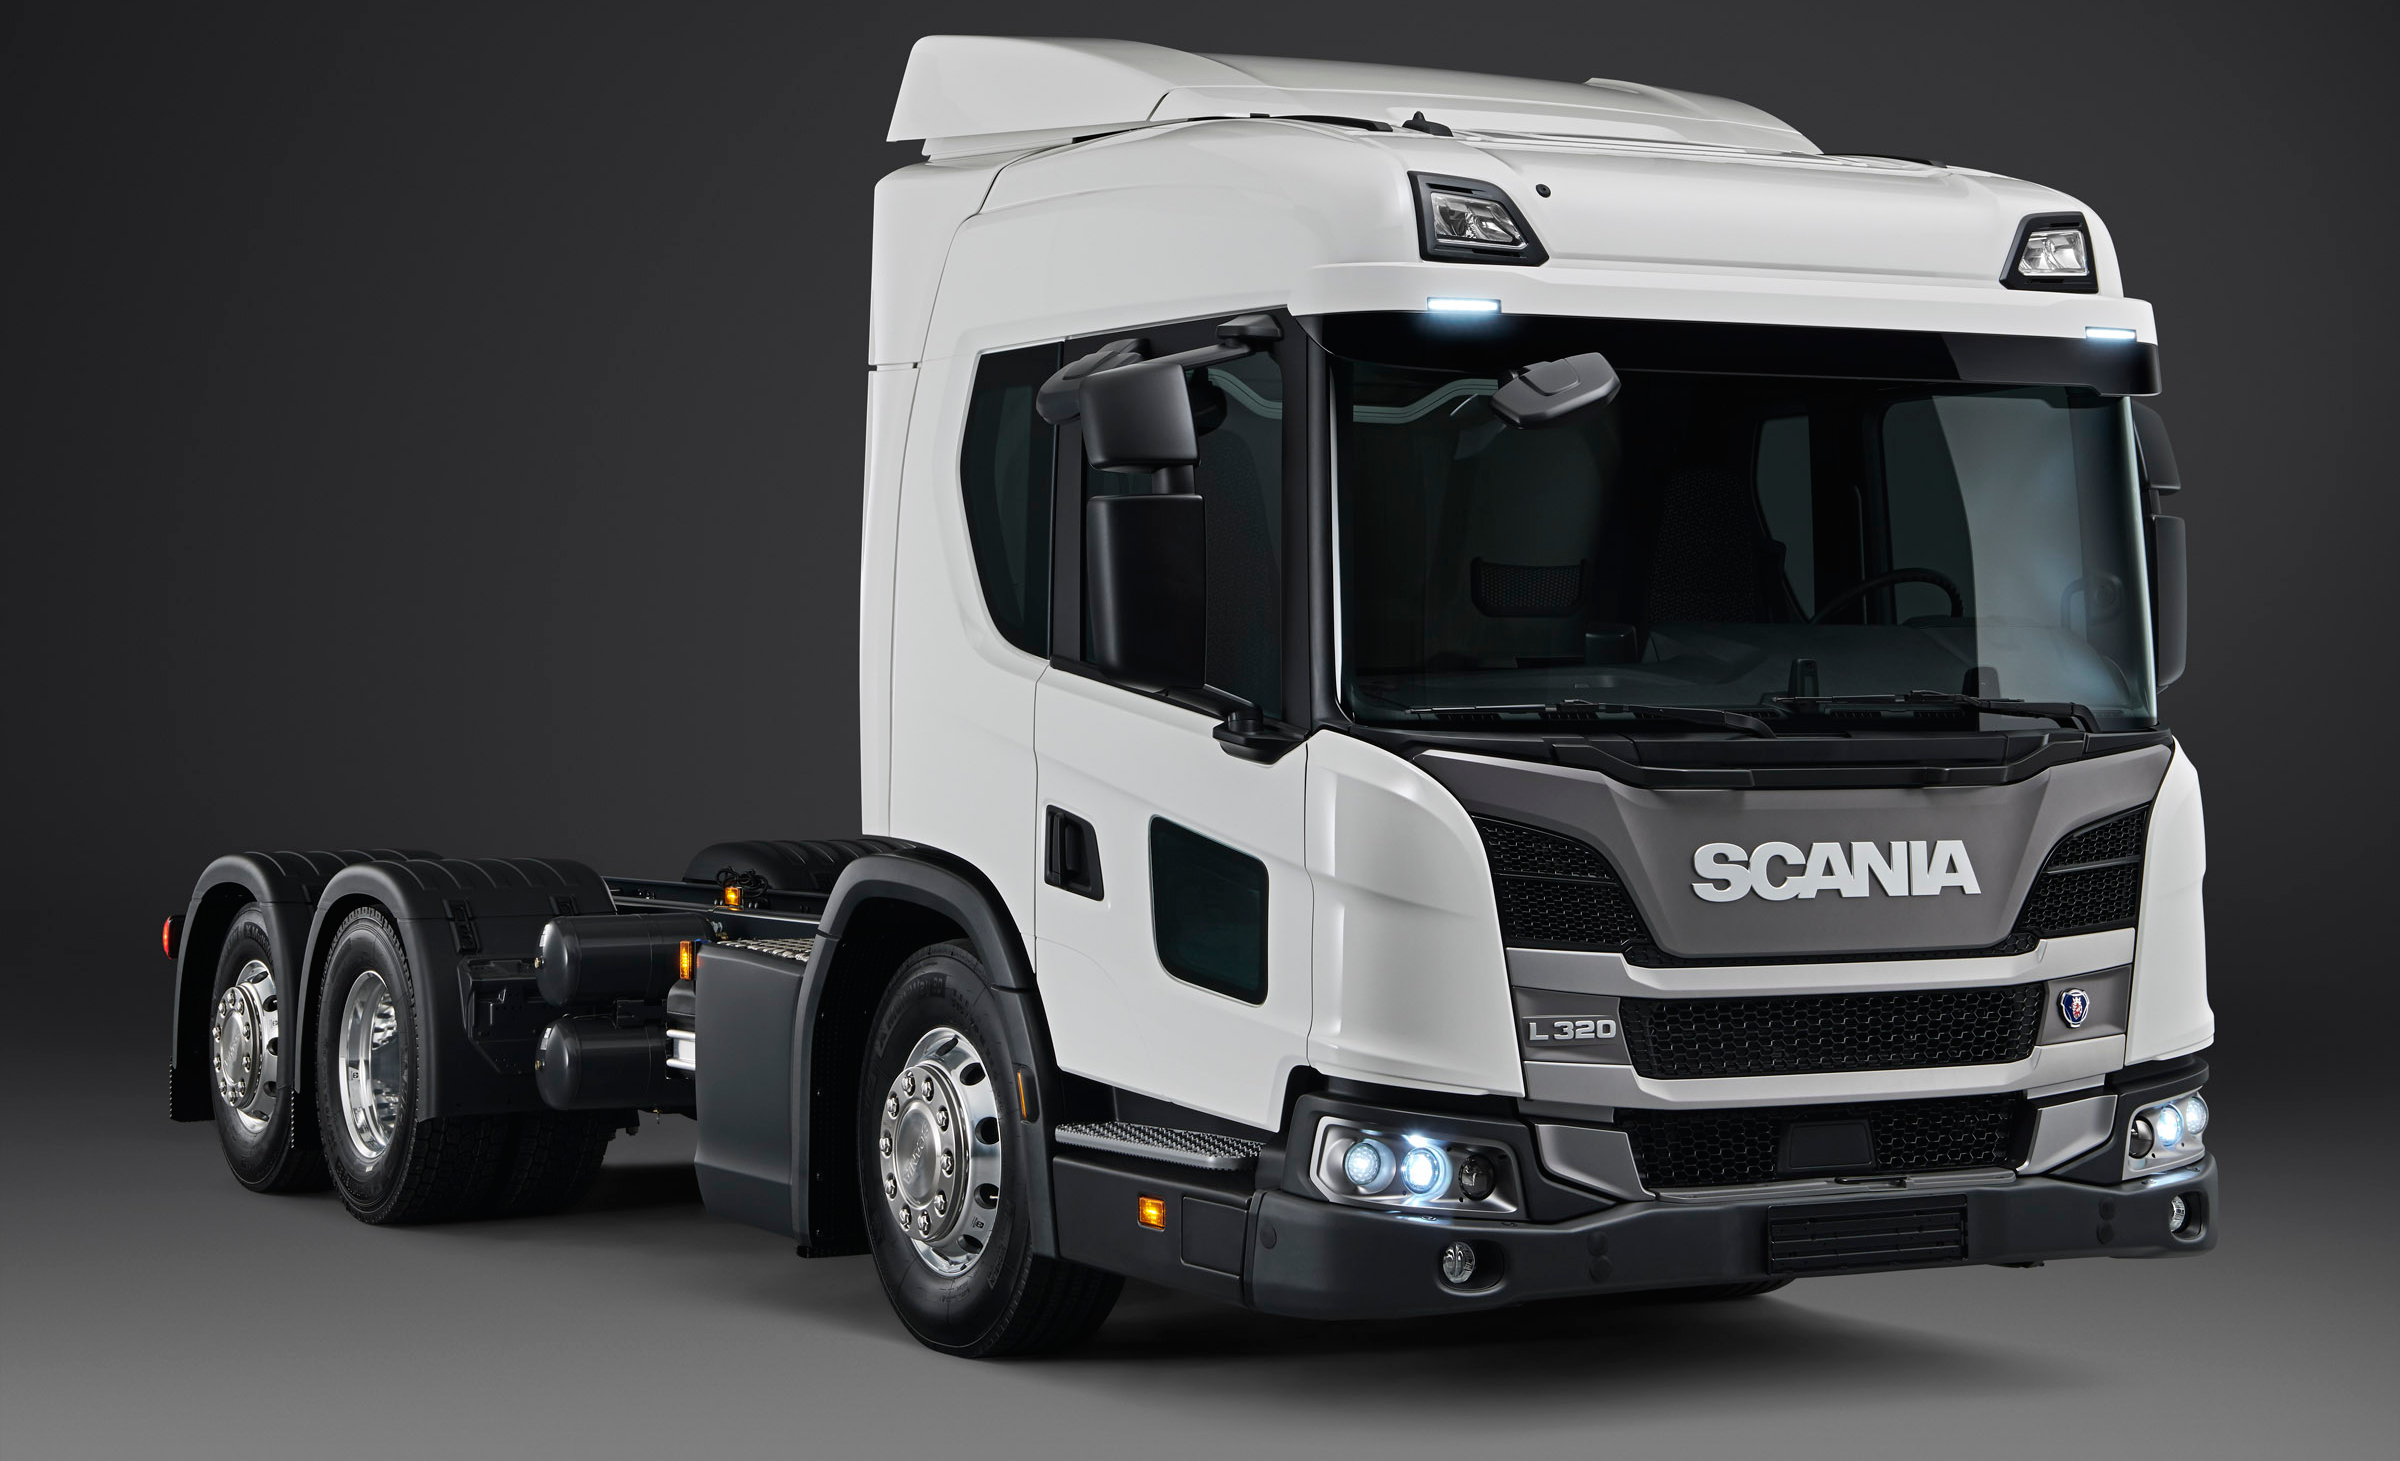 Truck Cab Inside >> Scania L-series low-entry cab announced – Keltruck Scania